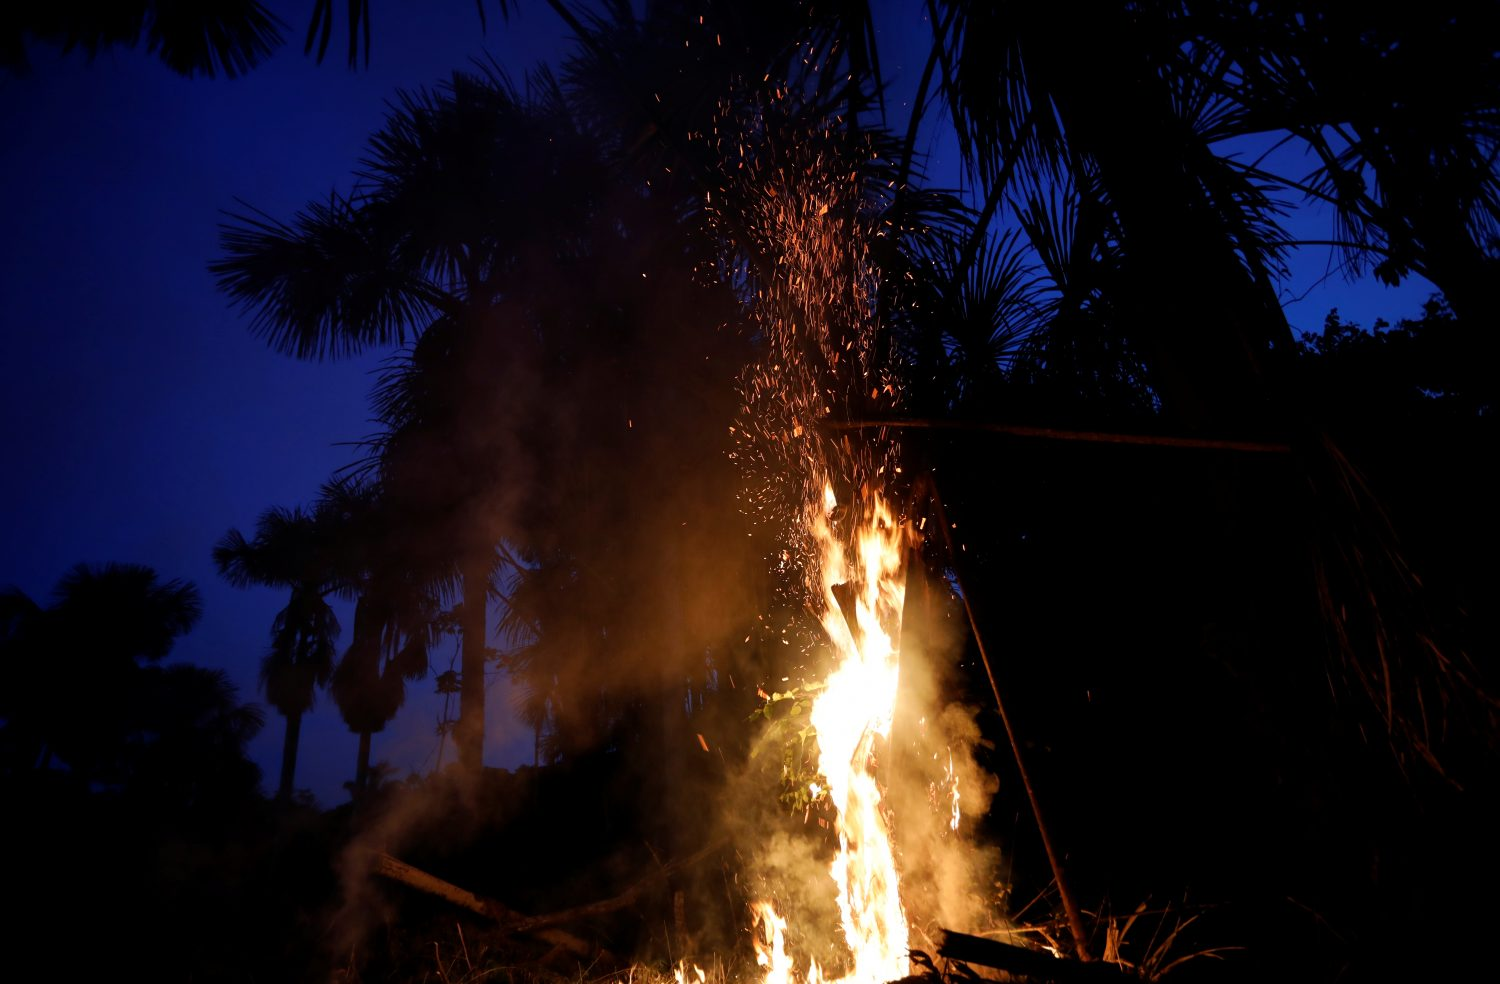 FILE PHOTO: A tract of the Amazon jungle burns as it is cleared in Iranduba, Amazonas state, Brazil August 22, 2019. REUTERS/Bruno Kelly